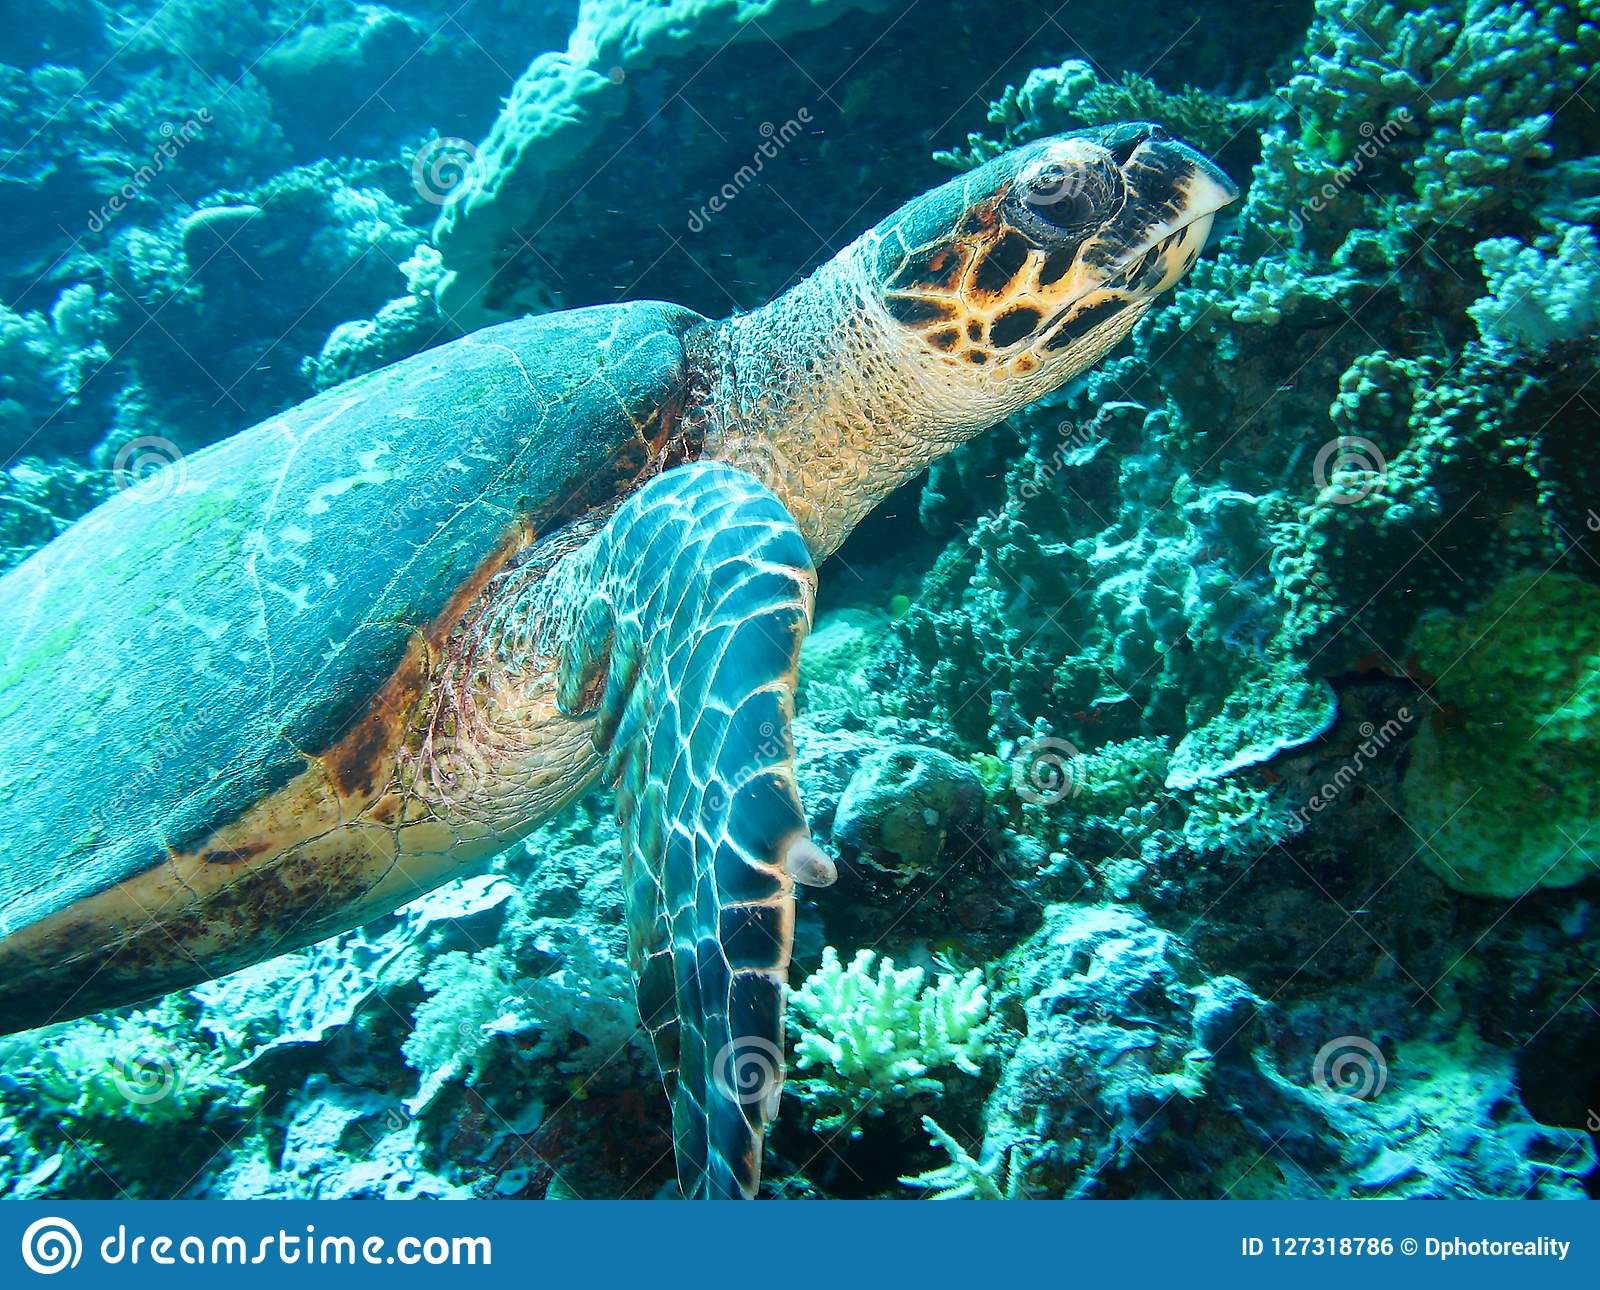 - Close Up Photo Of A Sea Turtle. The Photo Is In Yellow And Blue